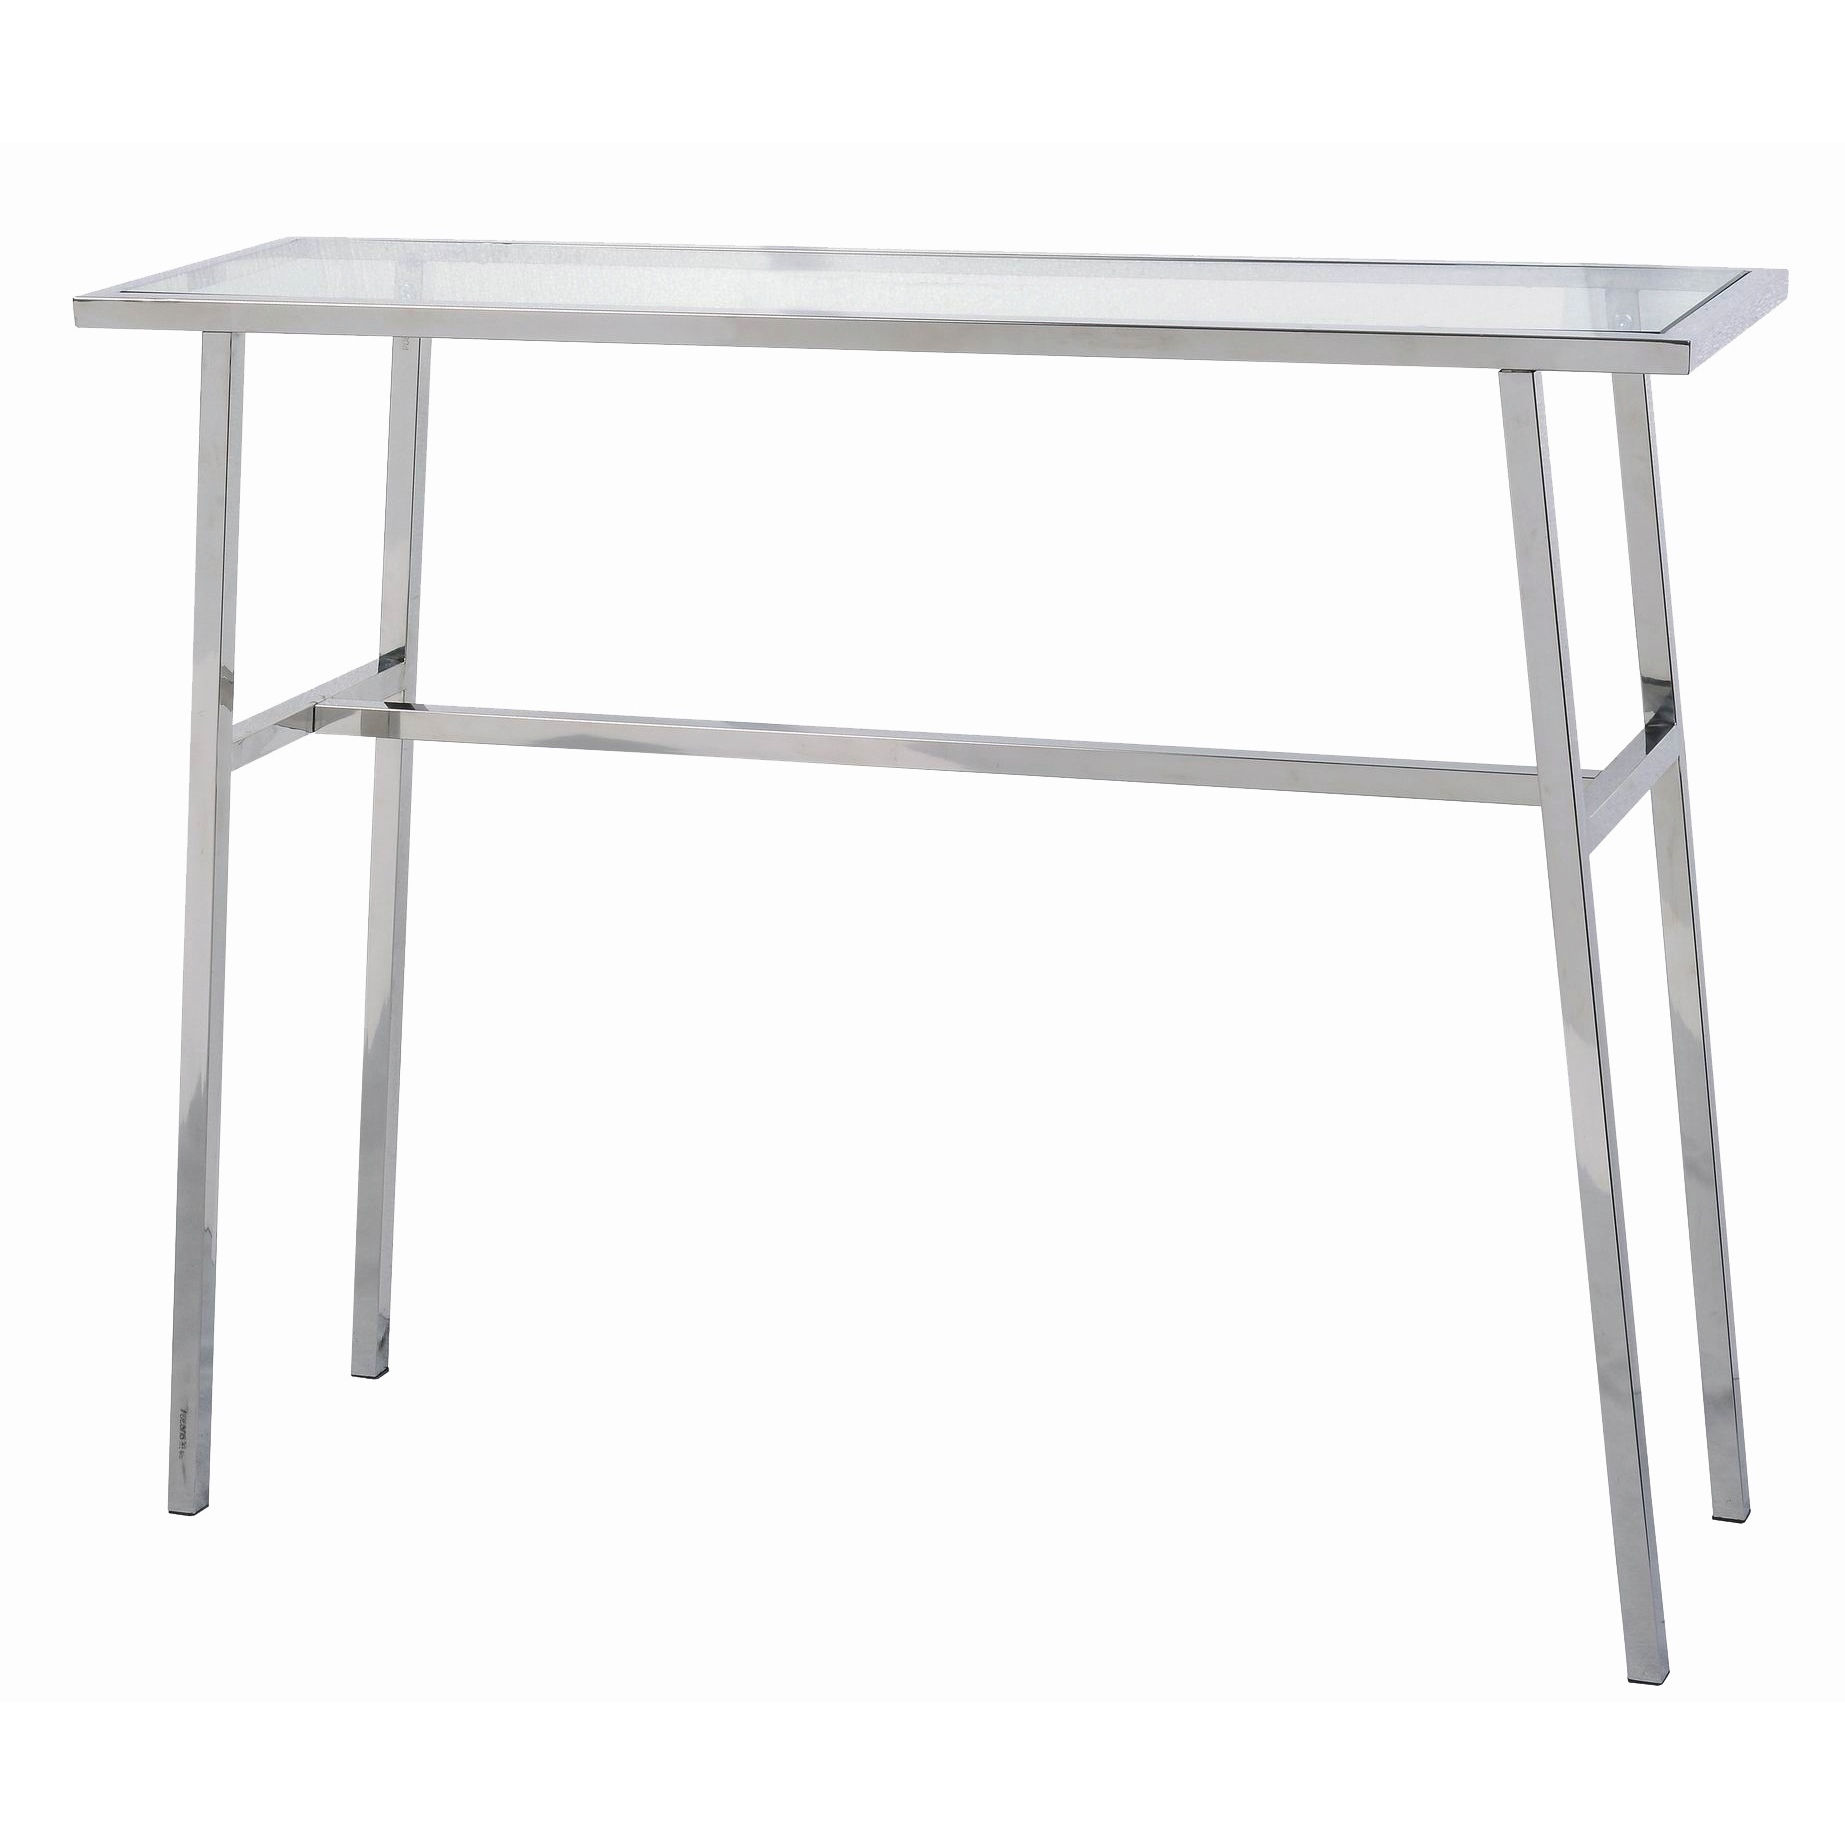 Design Craft Base Minimal Stainless Steel Console Table